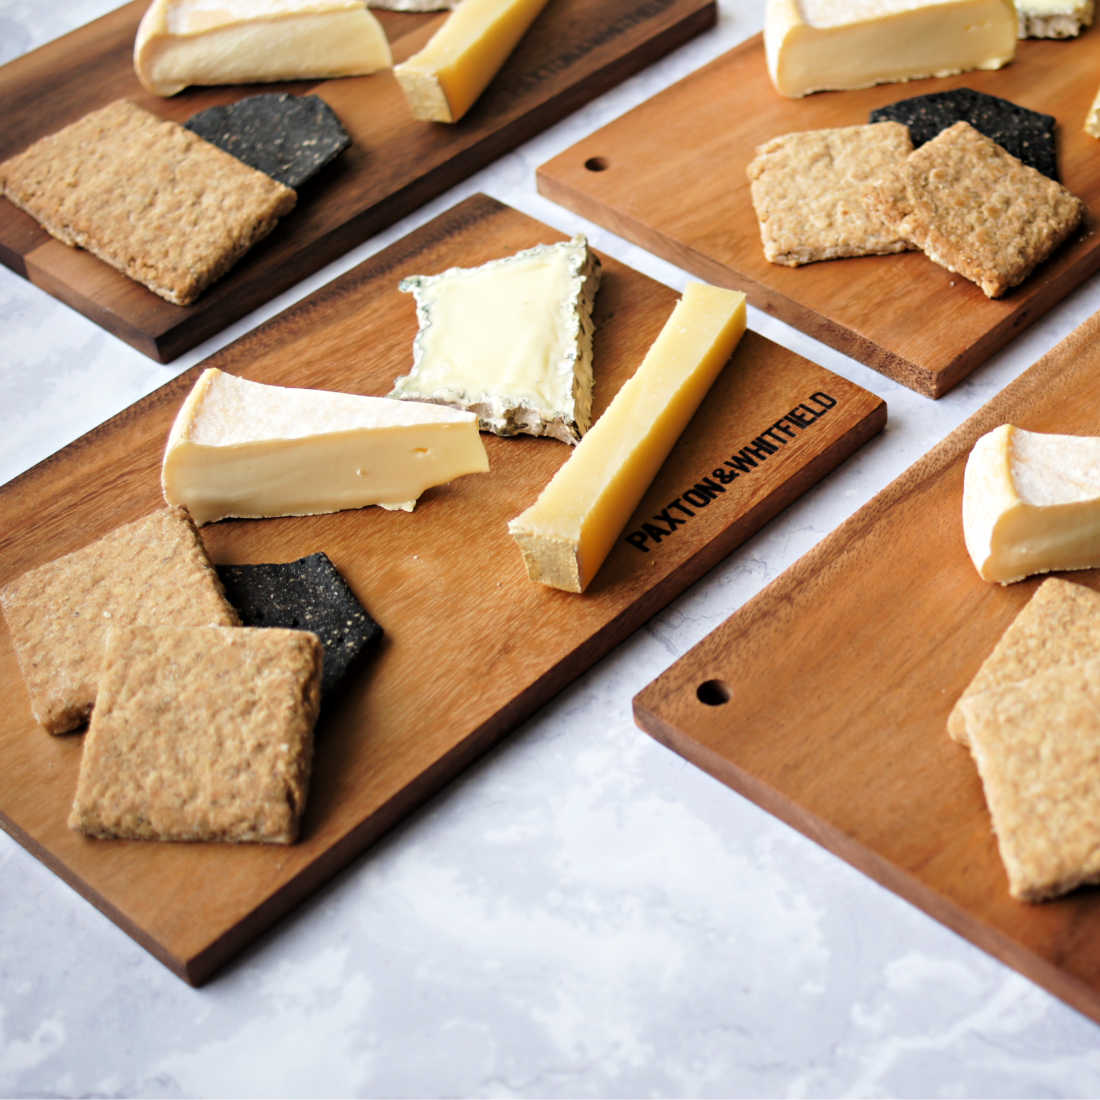 Set-of-4-individual-Cheese-Boards-Low-Res-Square